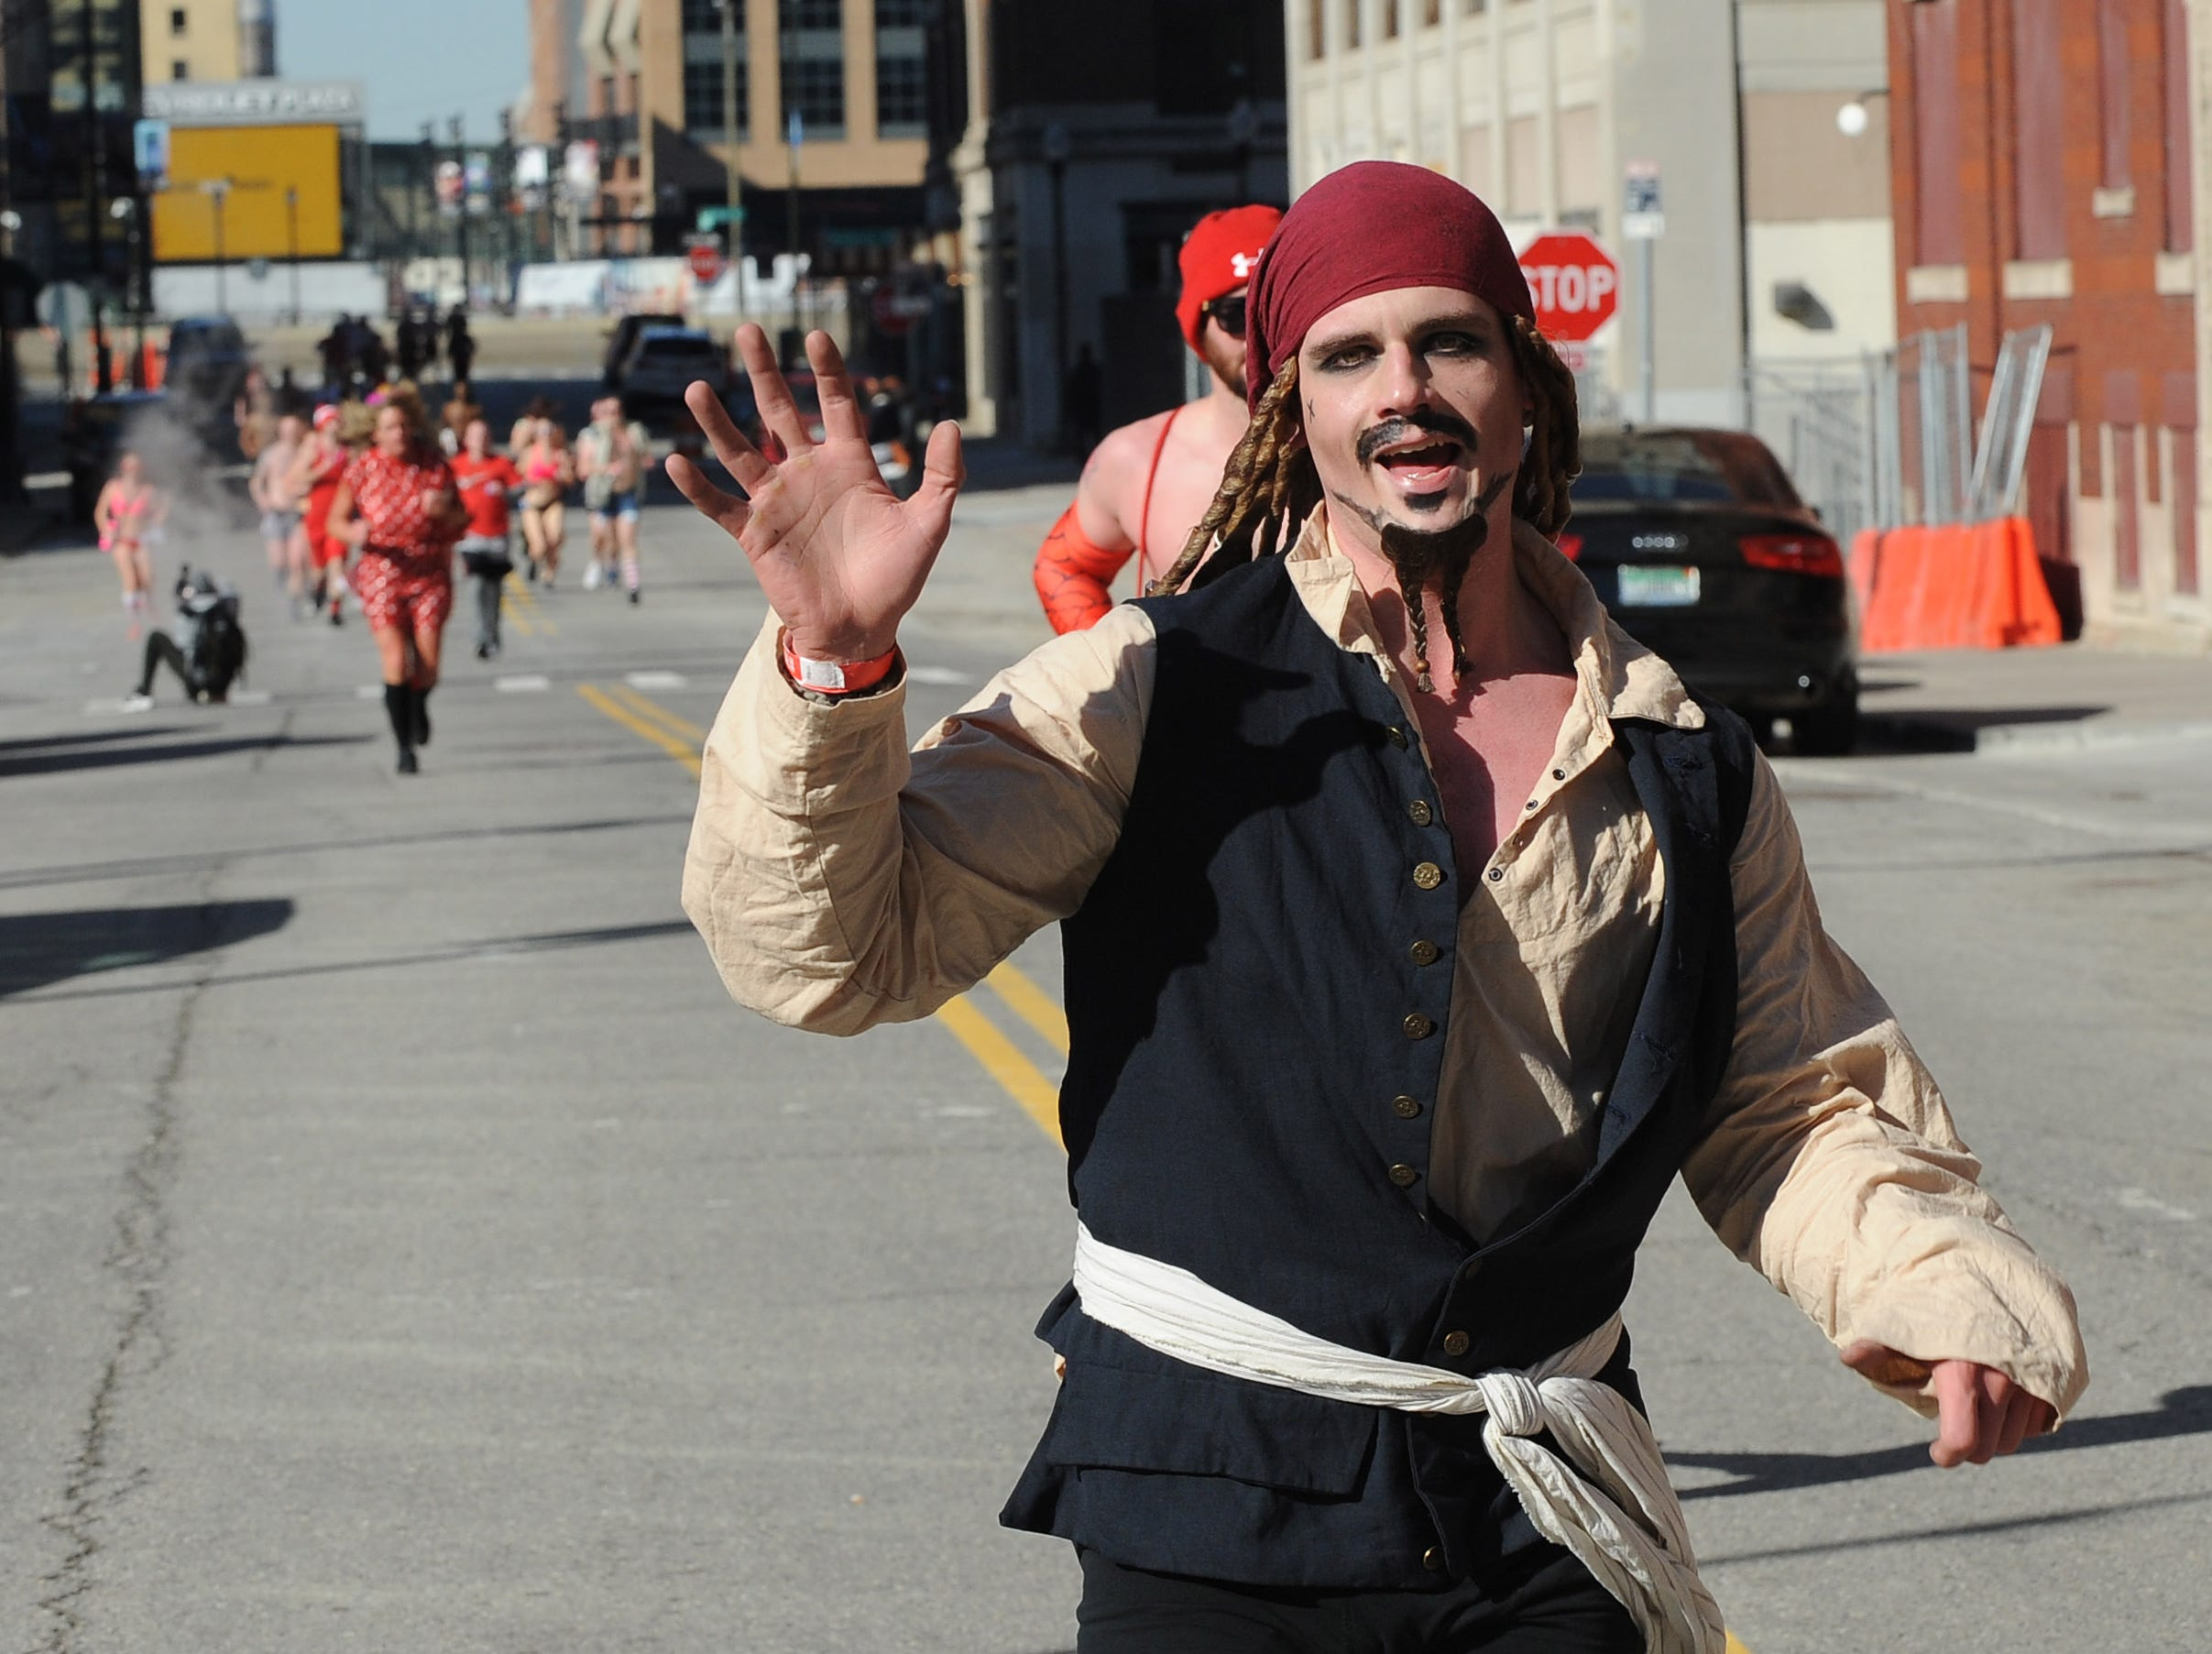 Even Captain Jack Sparrow ran Cupid's Undie Run.